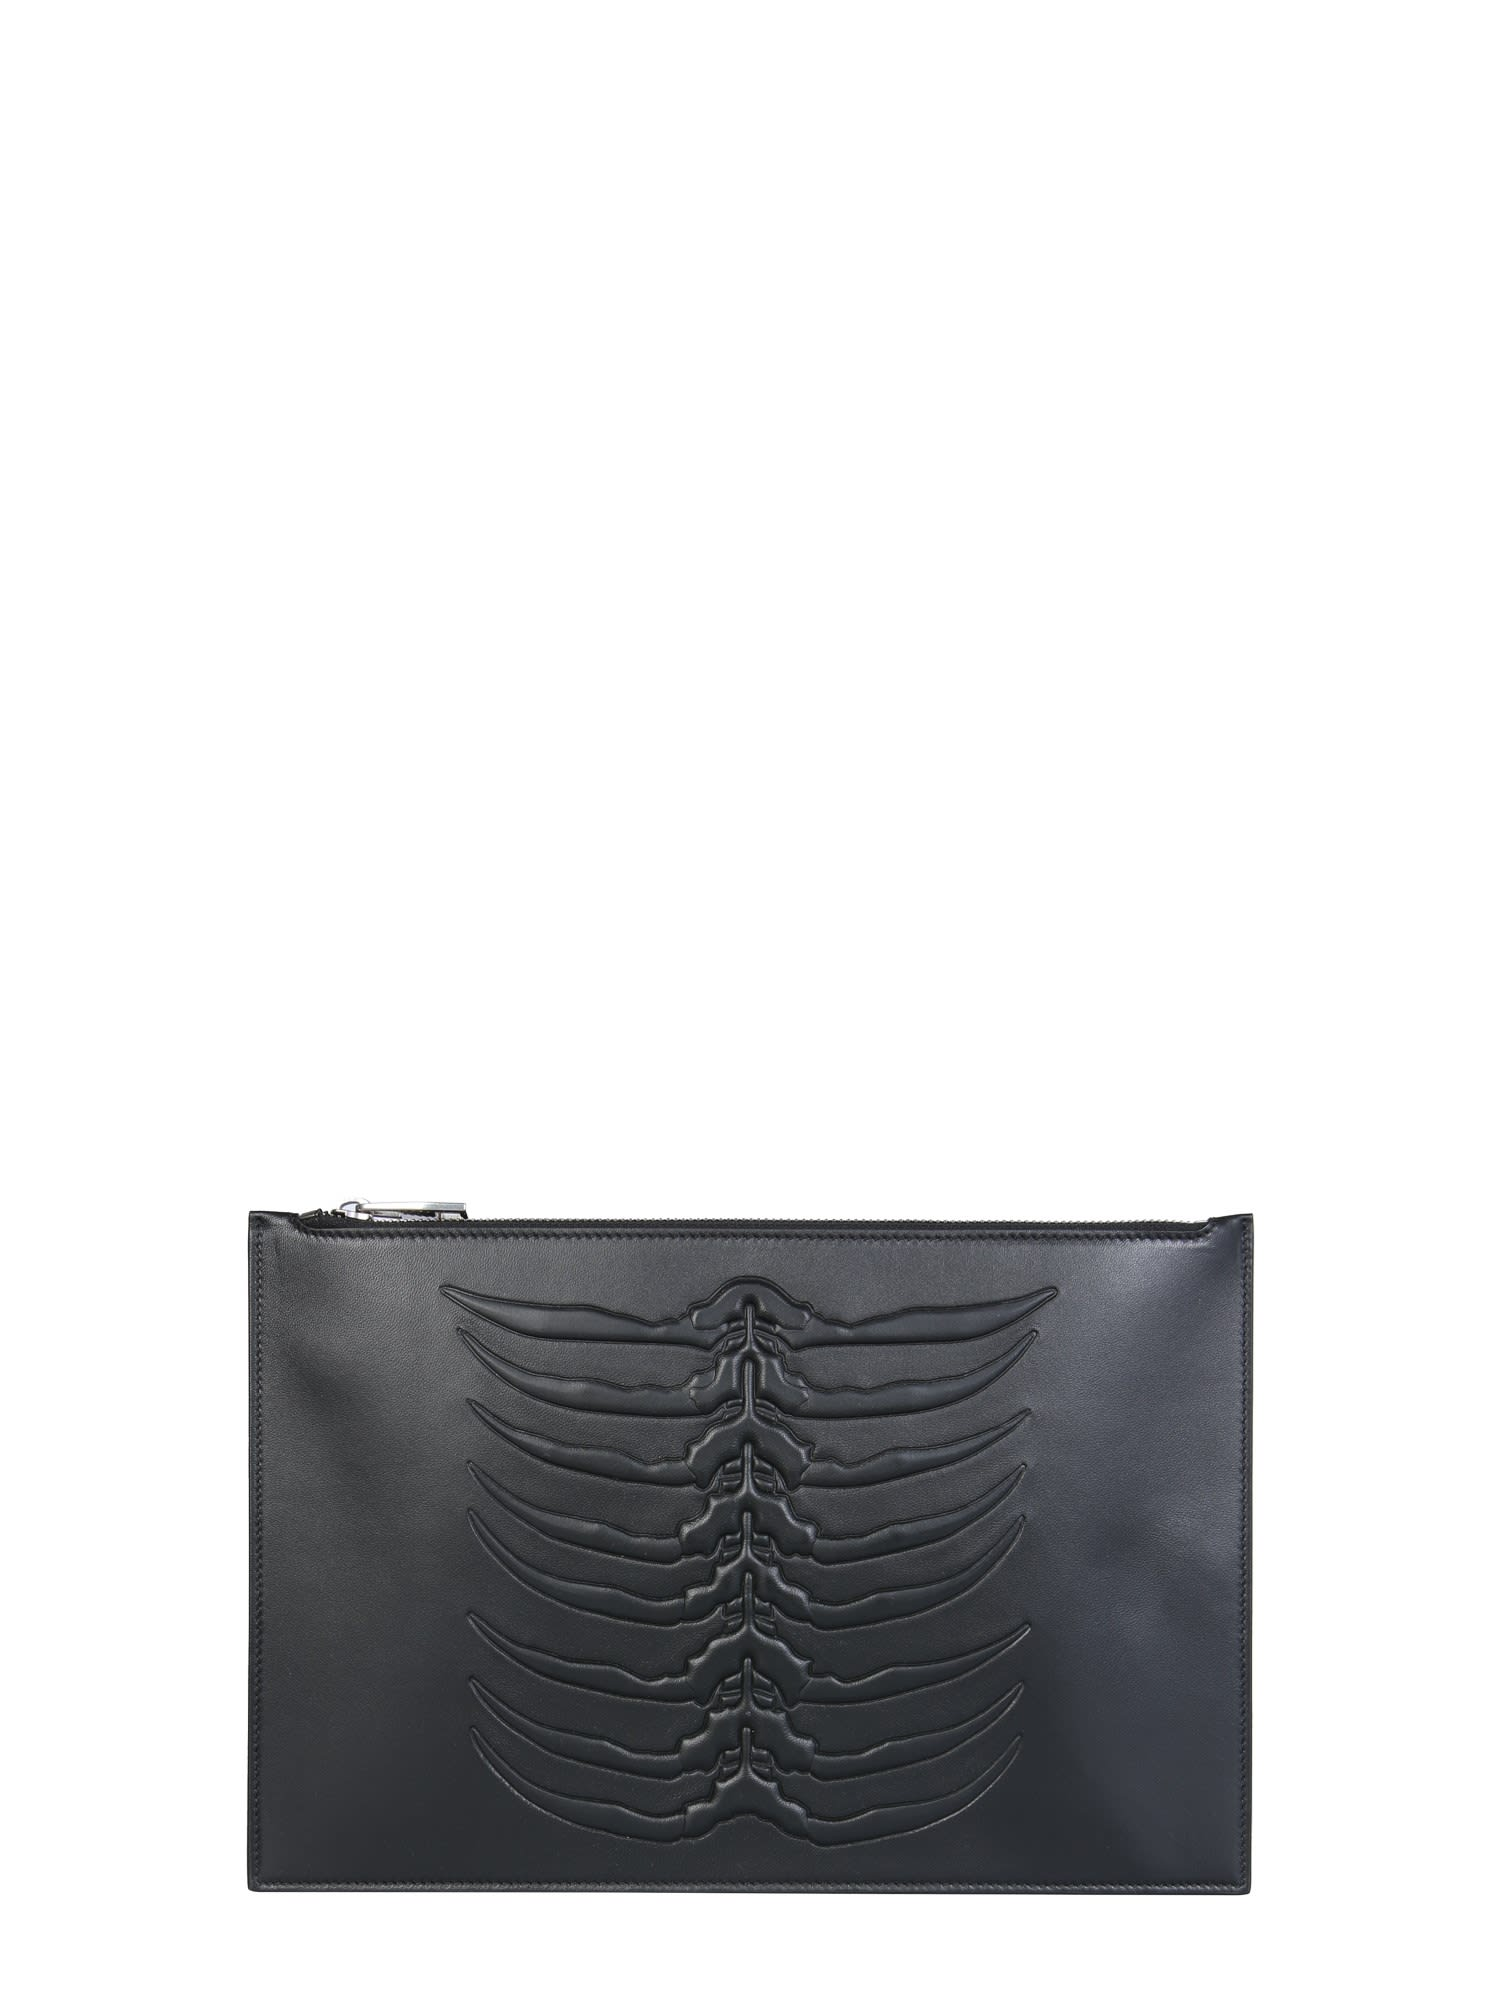 Alexander Mcqueen POUCH WITH LOGO